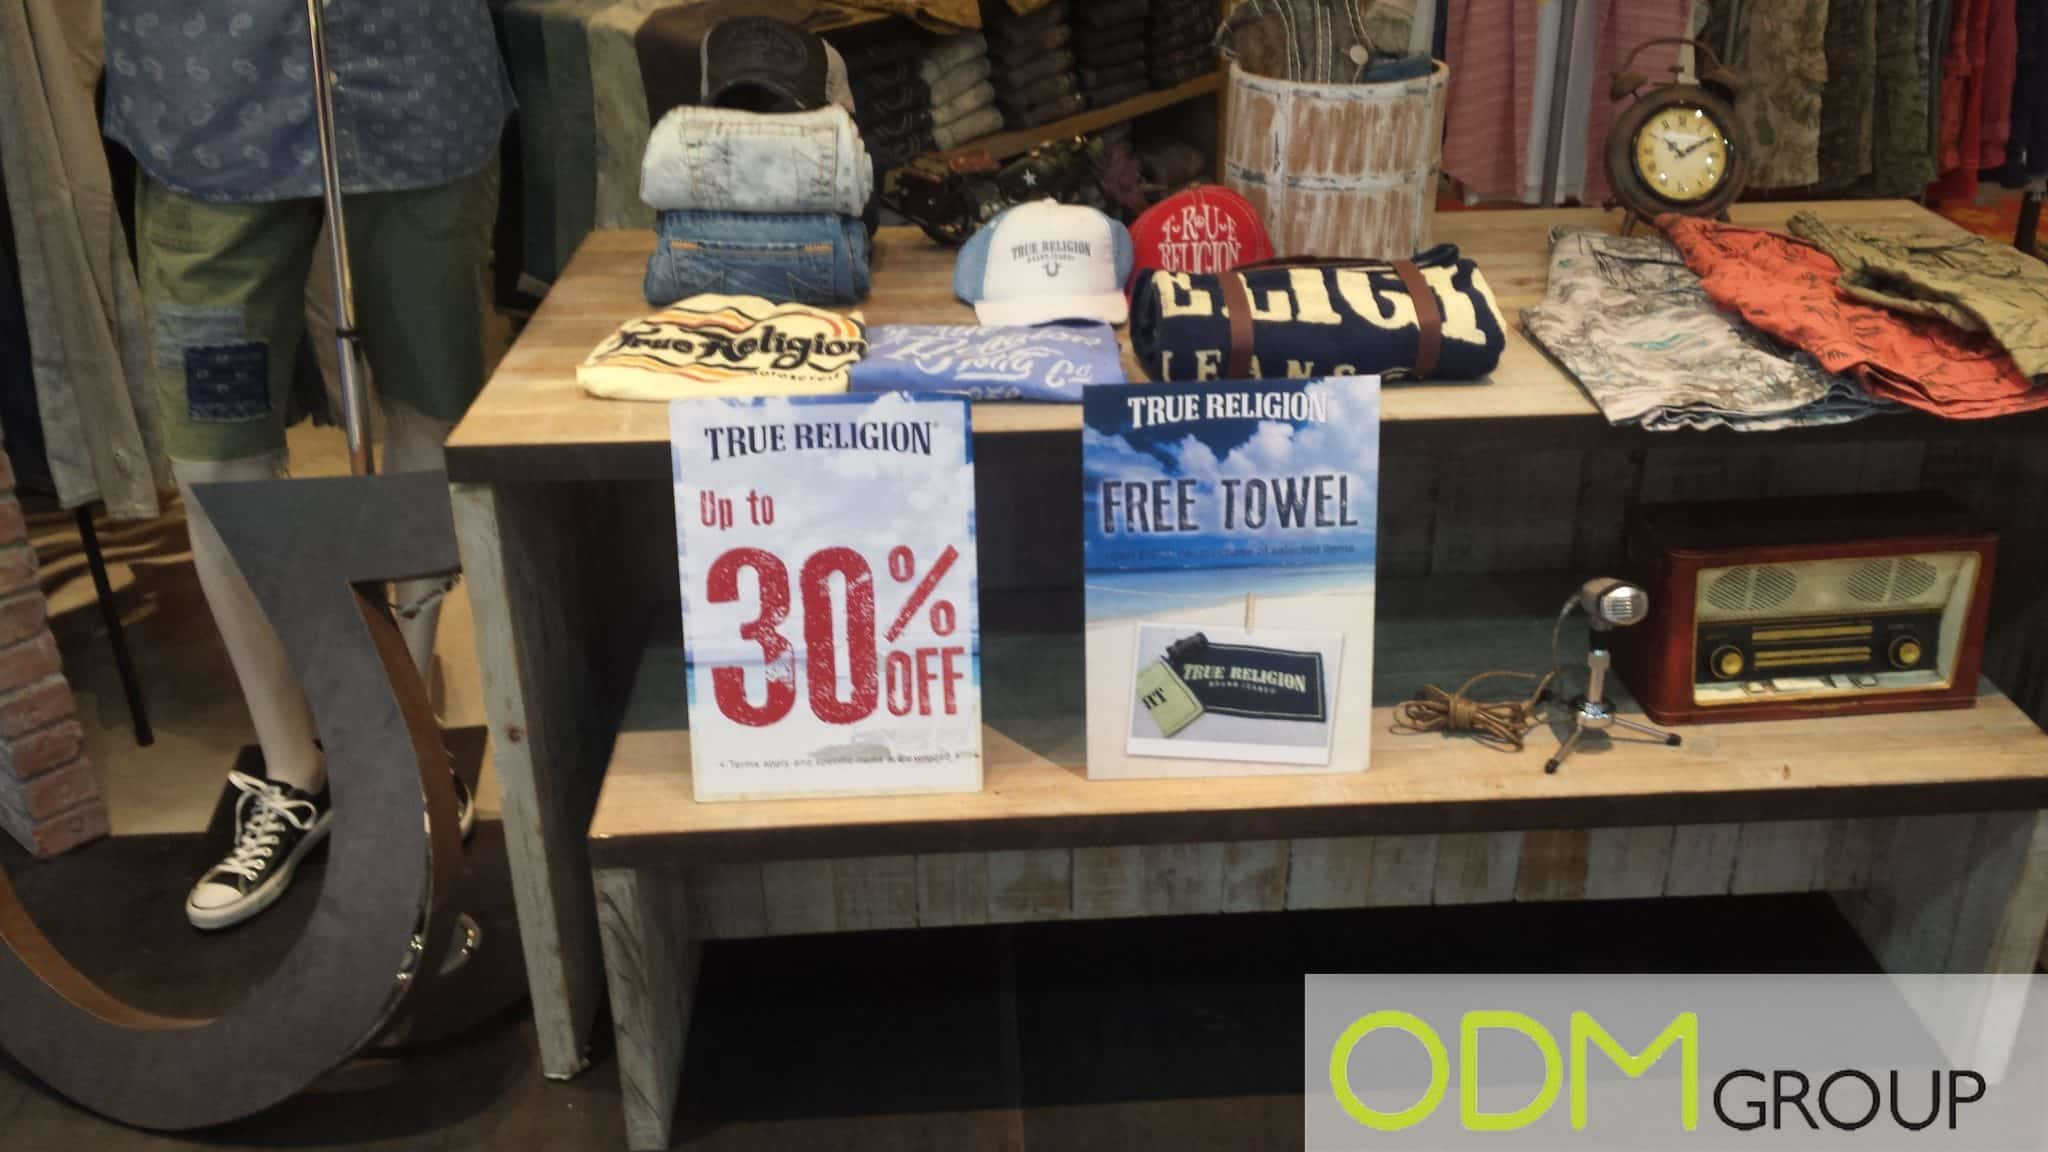 POS display by True religion